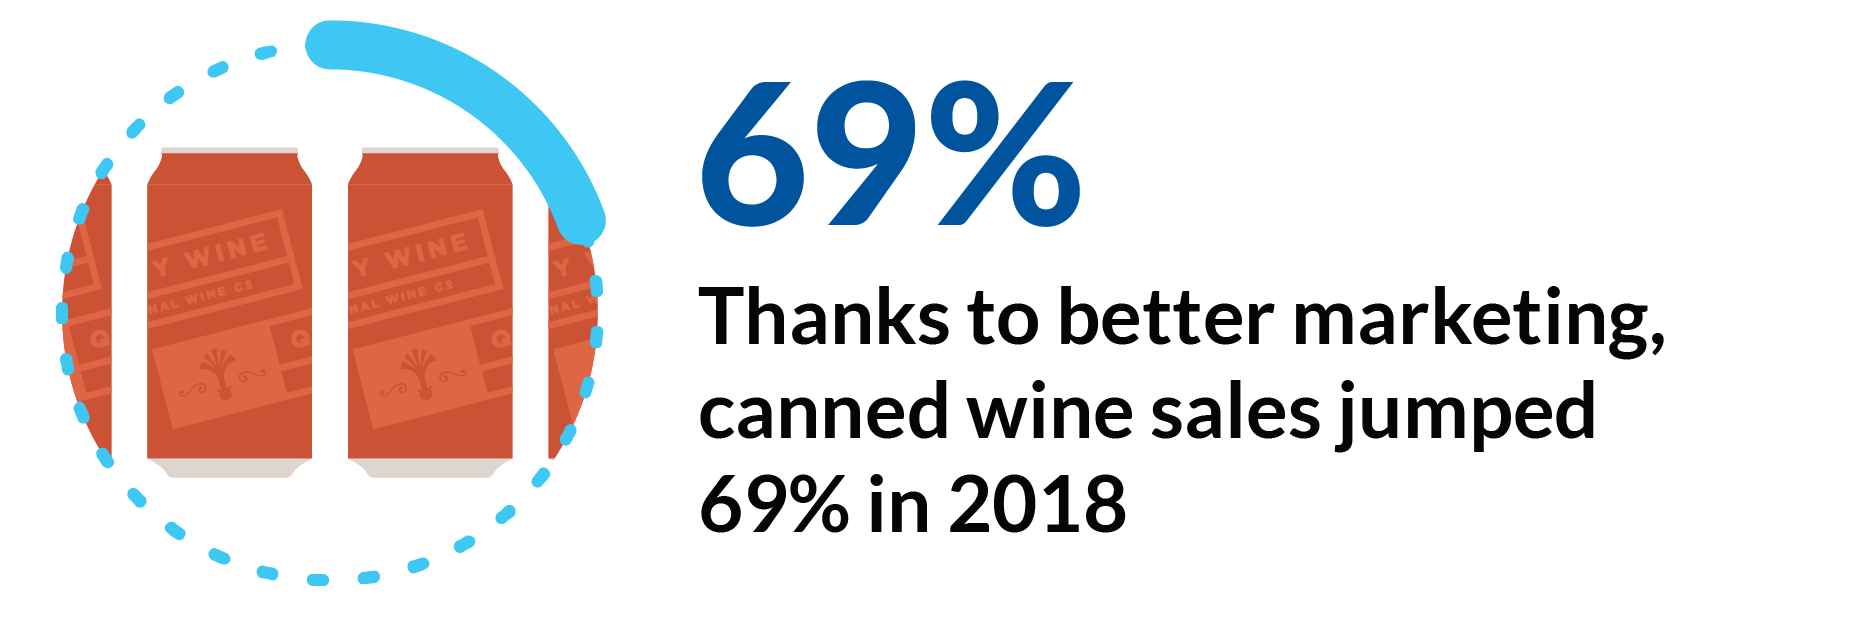 Content_CannedWineSalesJumped69Percent